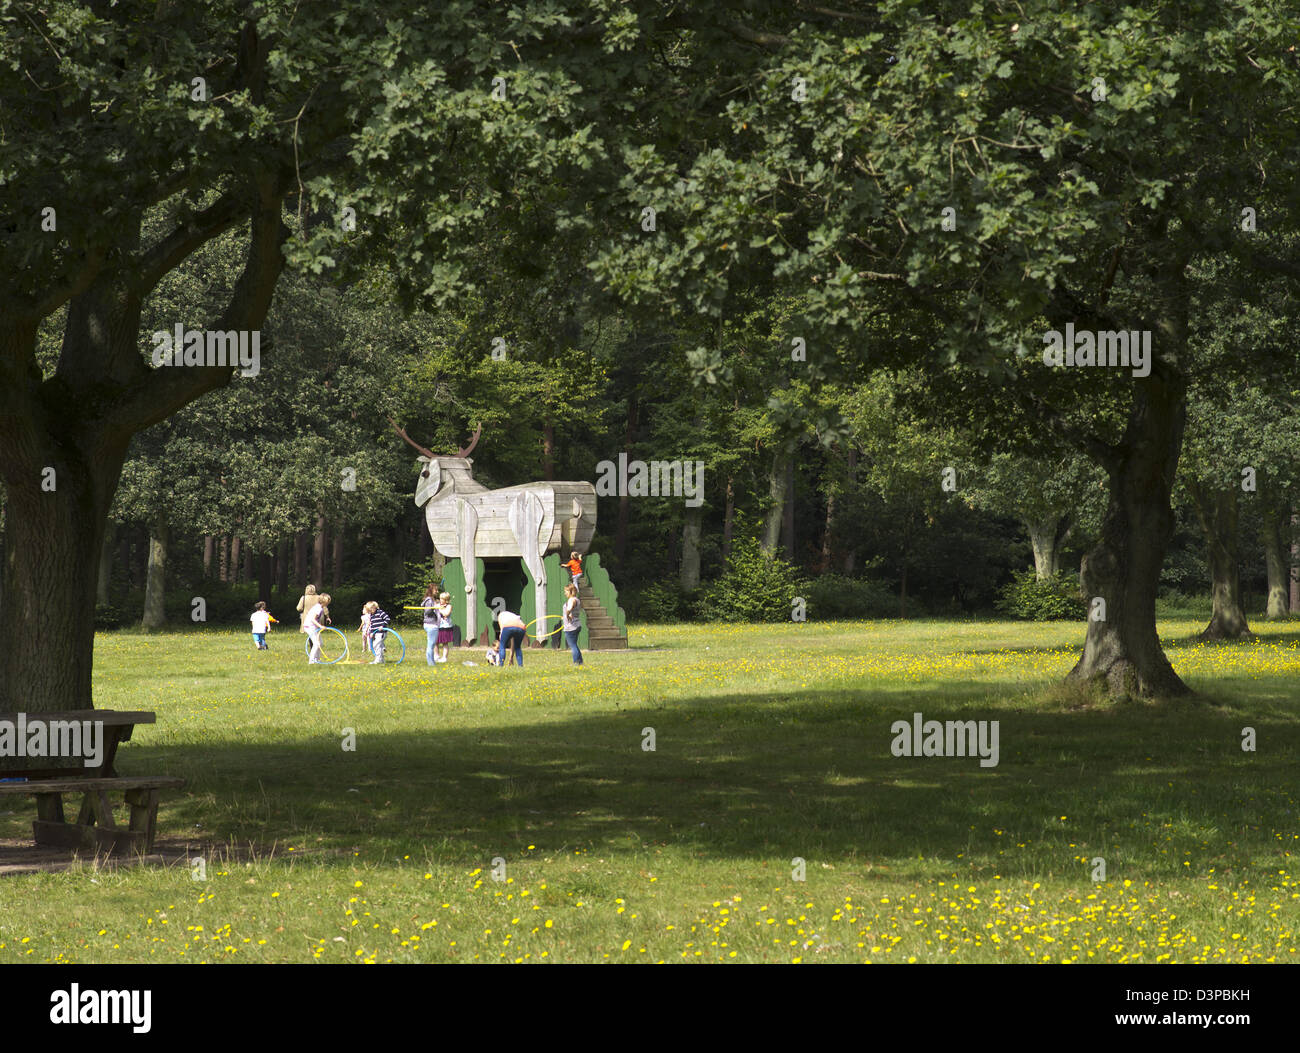 Children playing by wooden figure of a stag in Thetford Forest picnic site - Stock Image